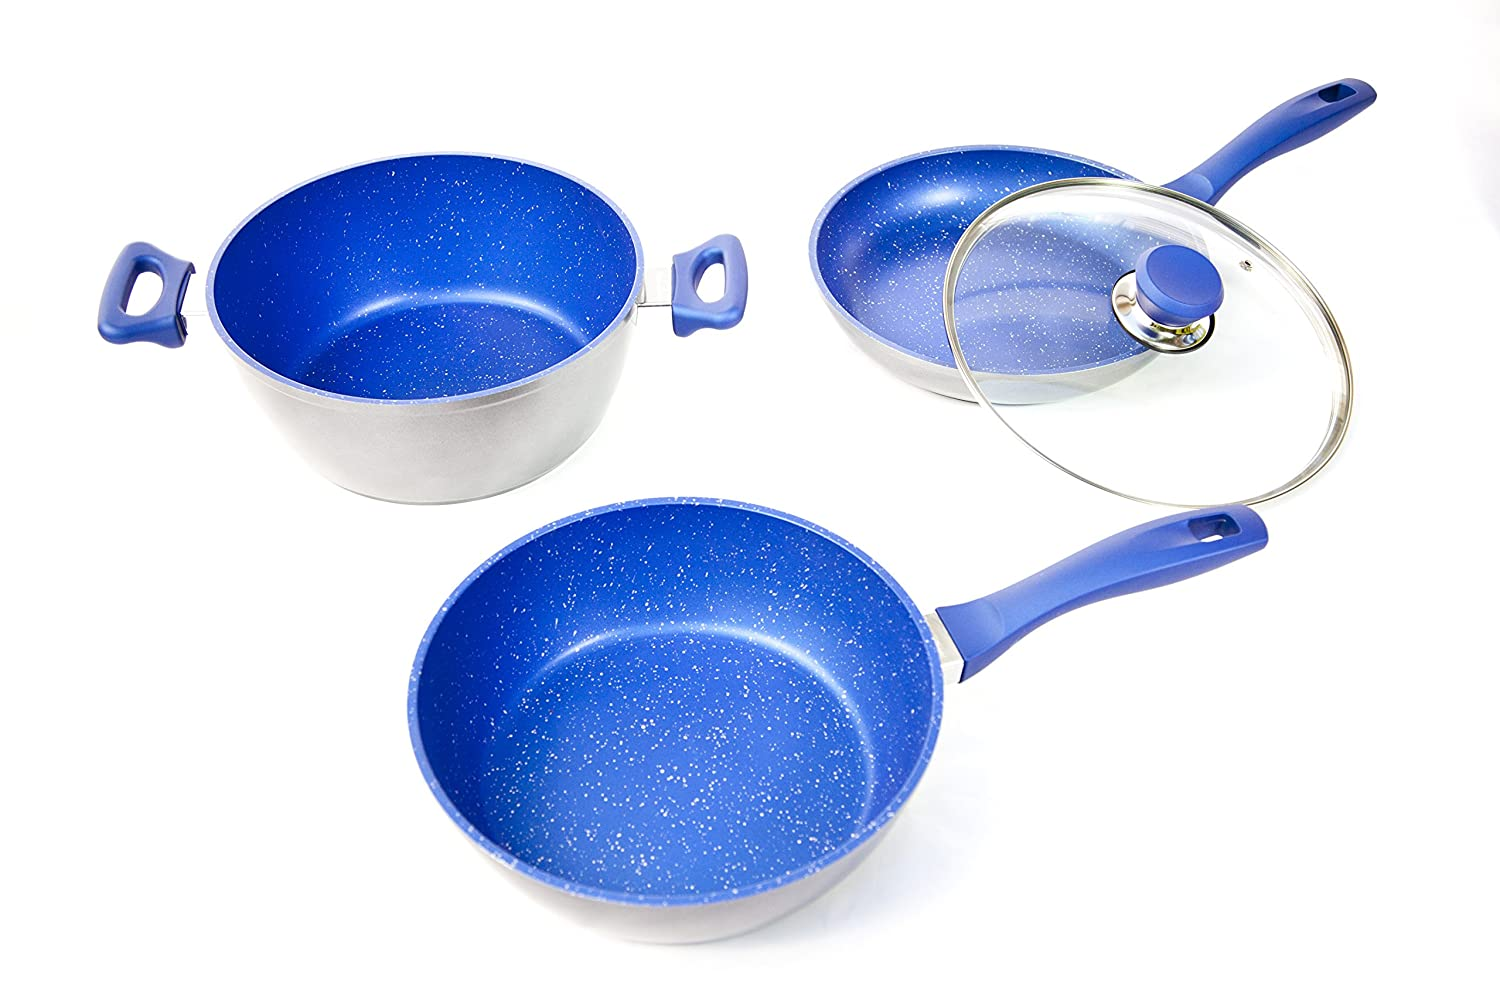 FlavorStone Gemstone-Tough, Sapphire Non-Stick Cookware 4-Piece 9.5 Master Set: The Only Cookware You'll Ever Need! As Seen On TV! Thane Canada Inc